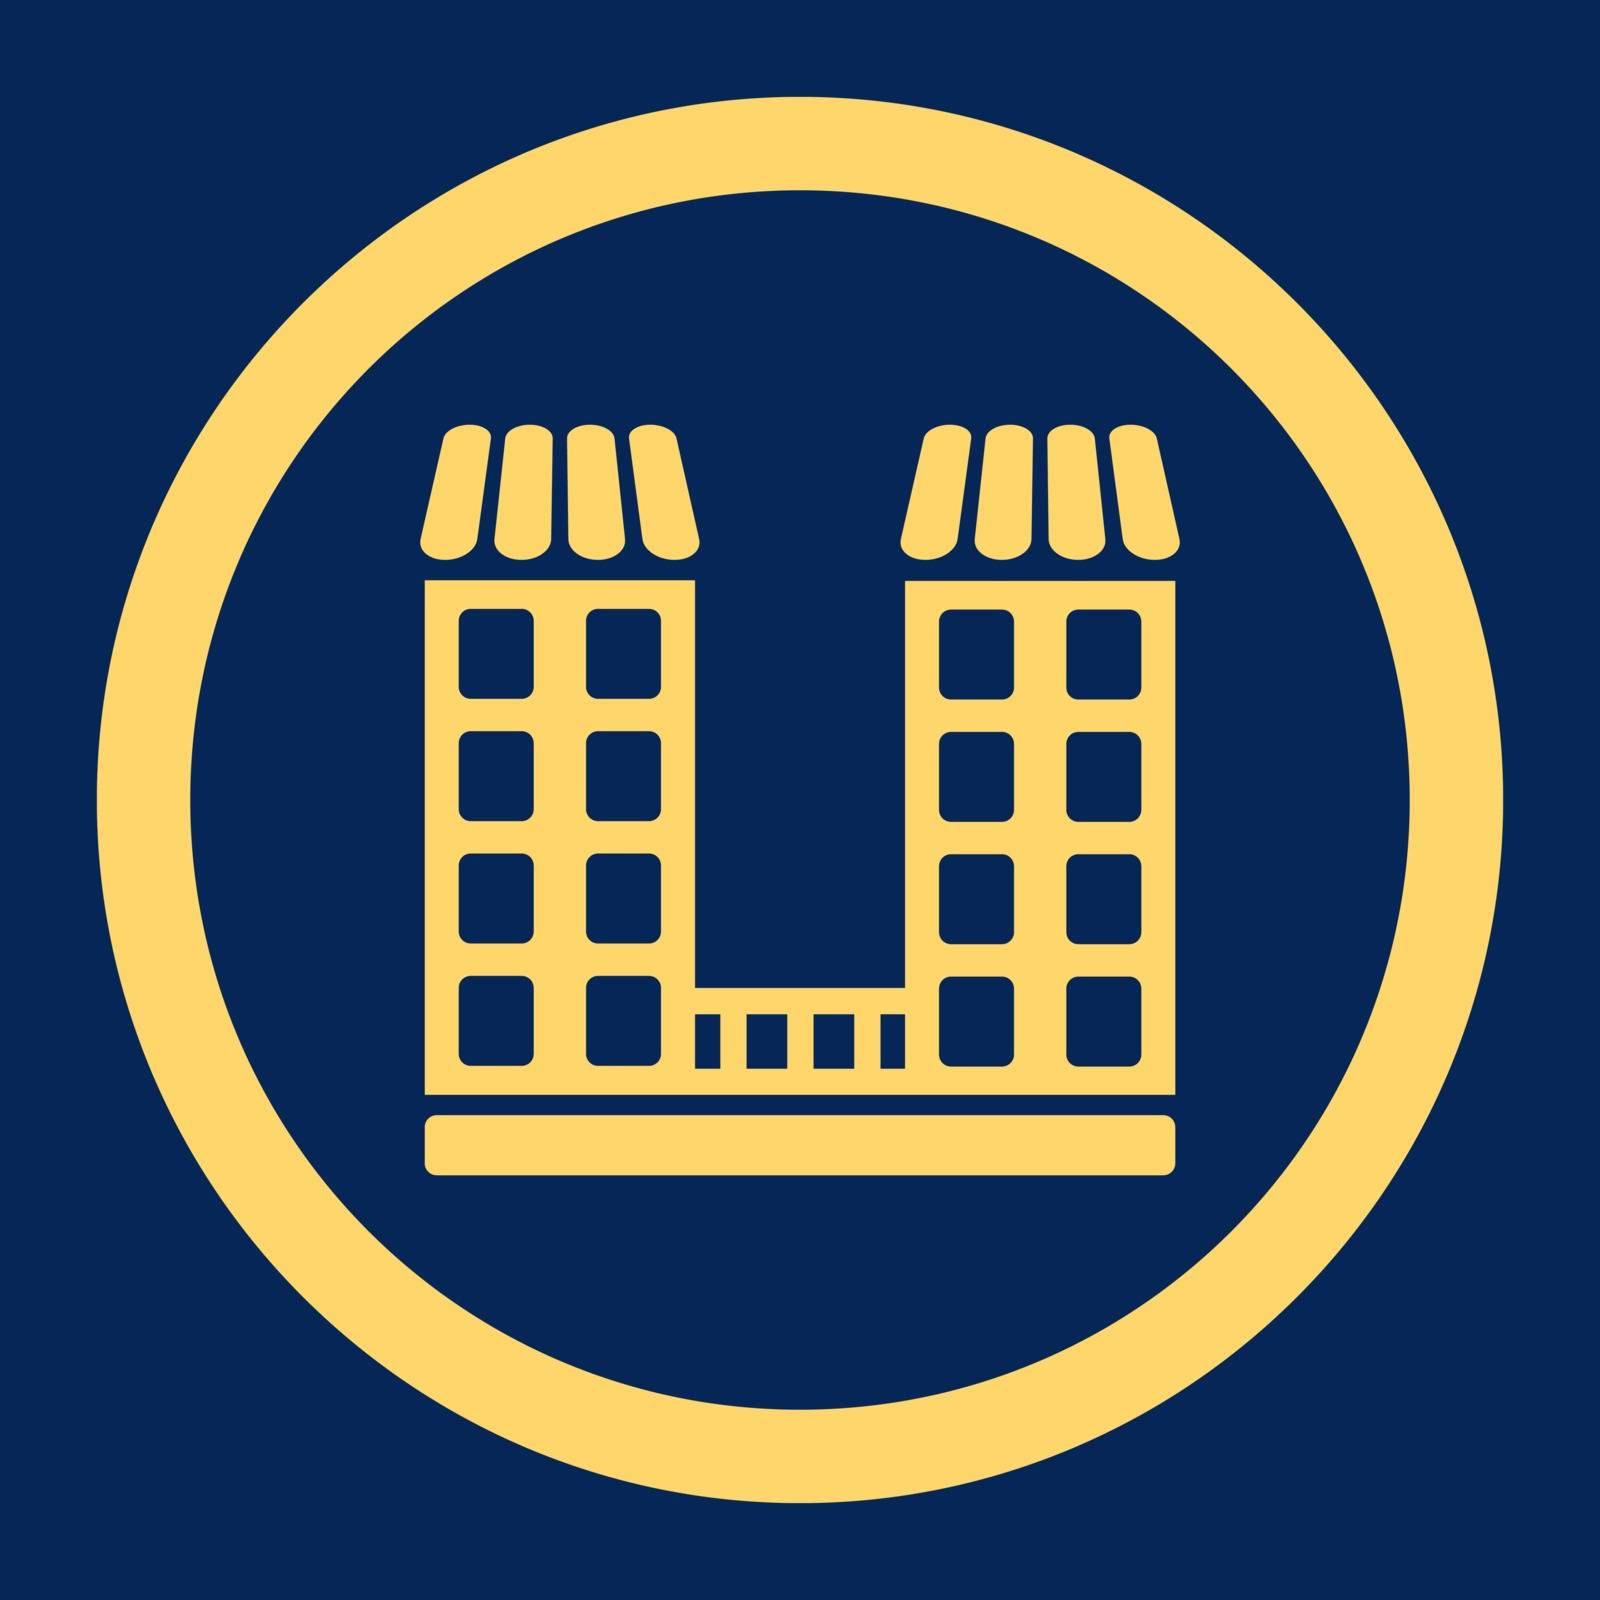 Company vector icon. This flat rounded symbol uses yellow color and isolated on a blue background.